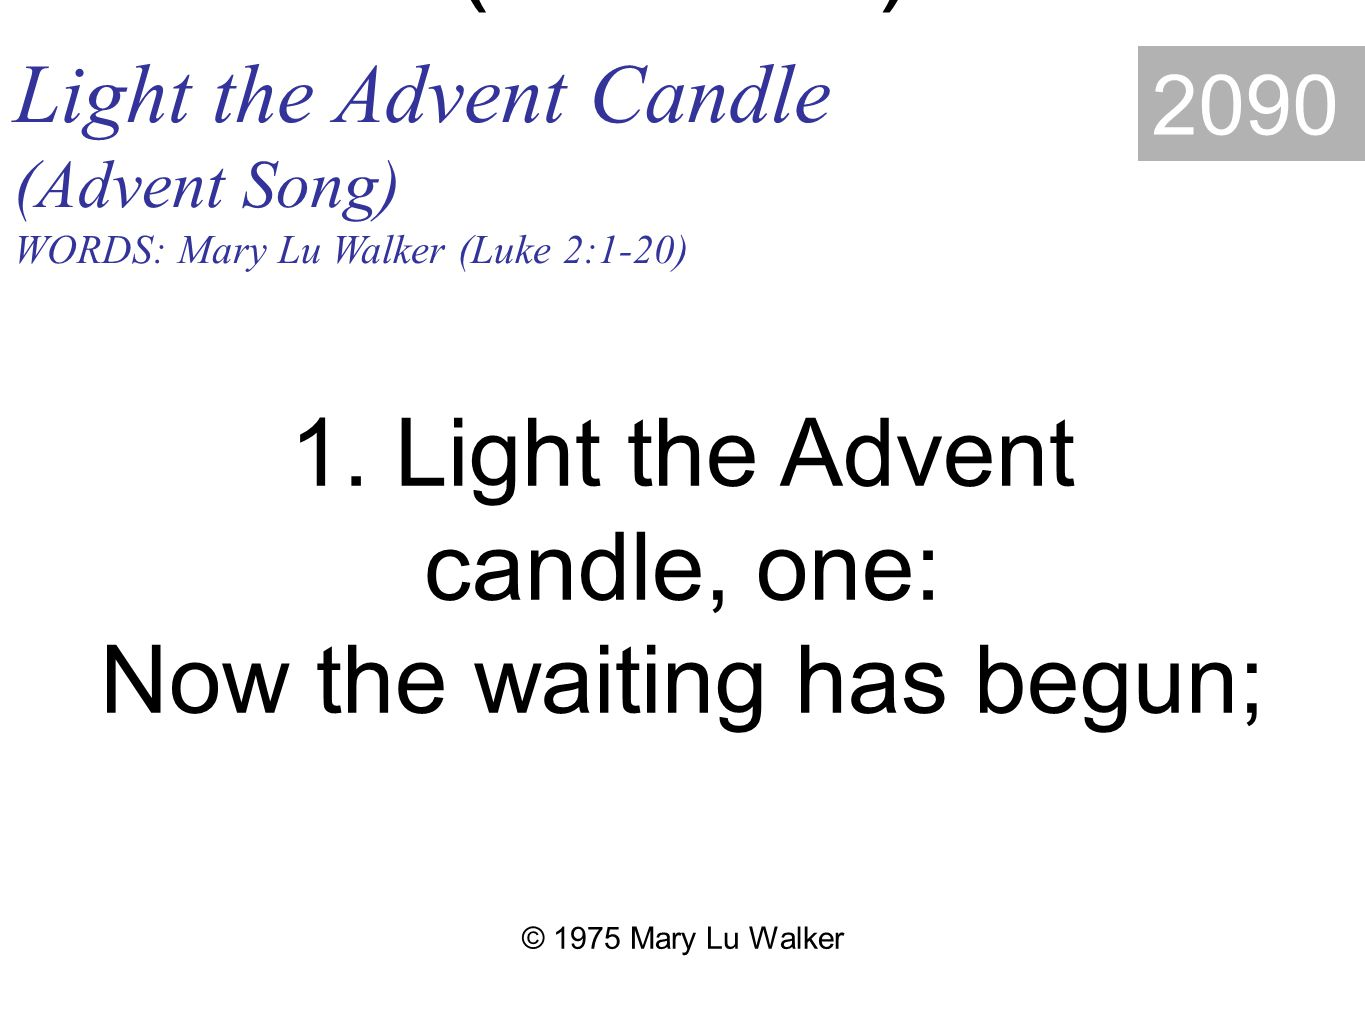 Light the Advent Candle (Advent Song) WORDS: Mary Lu Walker (Luke 2:1-20) 2090 1.